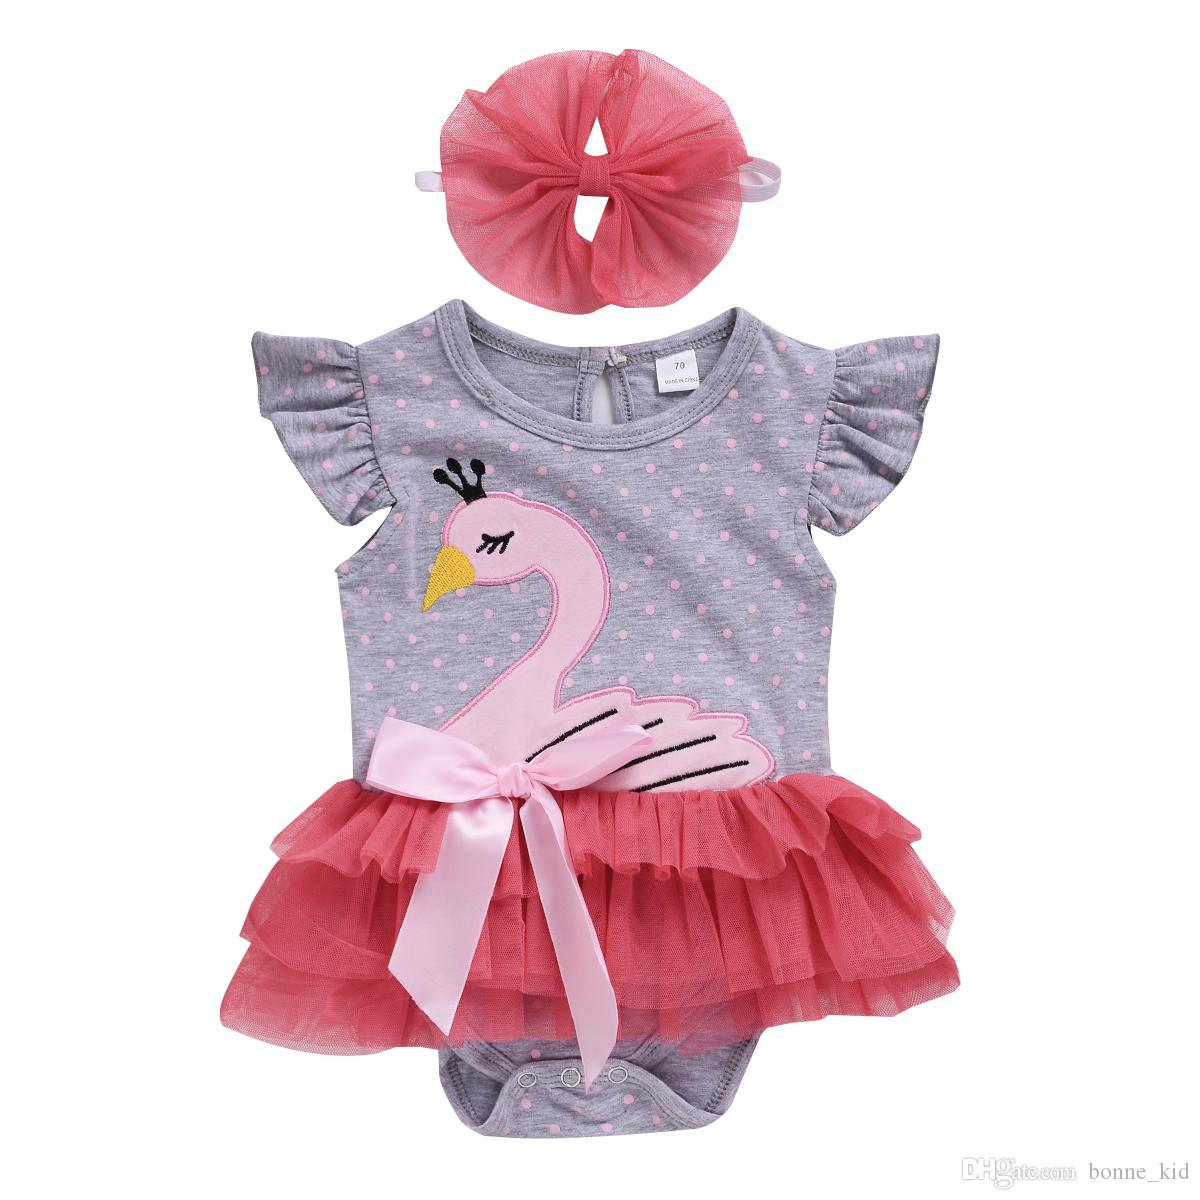 204d5537cdf 2019 Infant Baby Girls Swan Dot Rompers With Bow Headband Lace Tulle  Jumpsuits Bodysuit Onesies Fashion Boutique Kids Clothes 0 24M From  Bonne kid